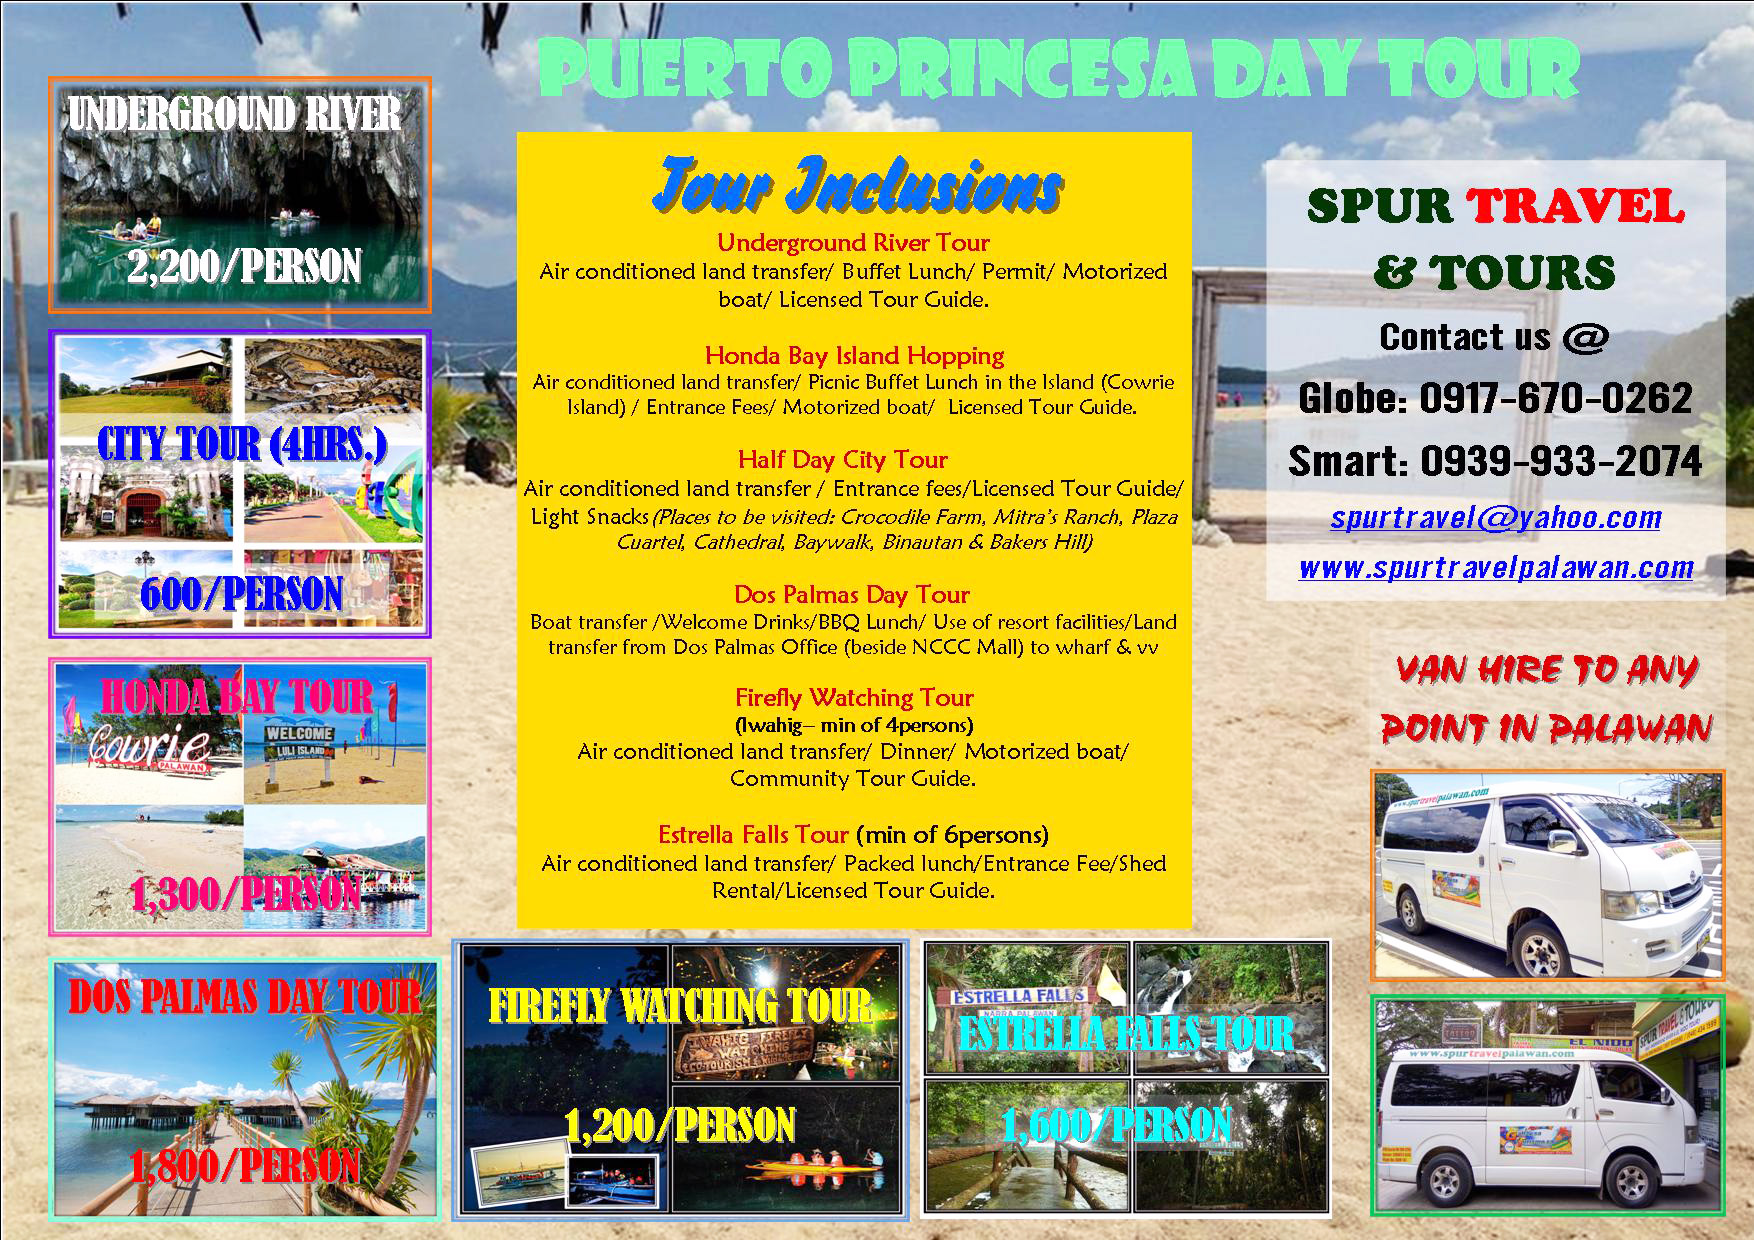 Puerto Princesa Day Tour